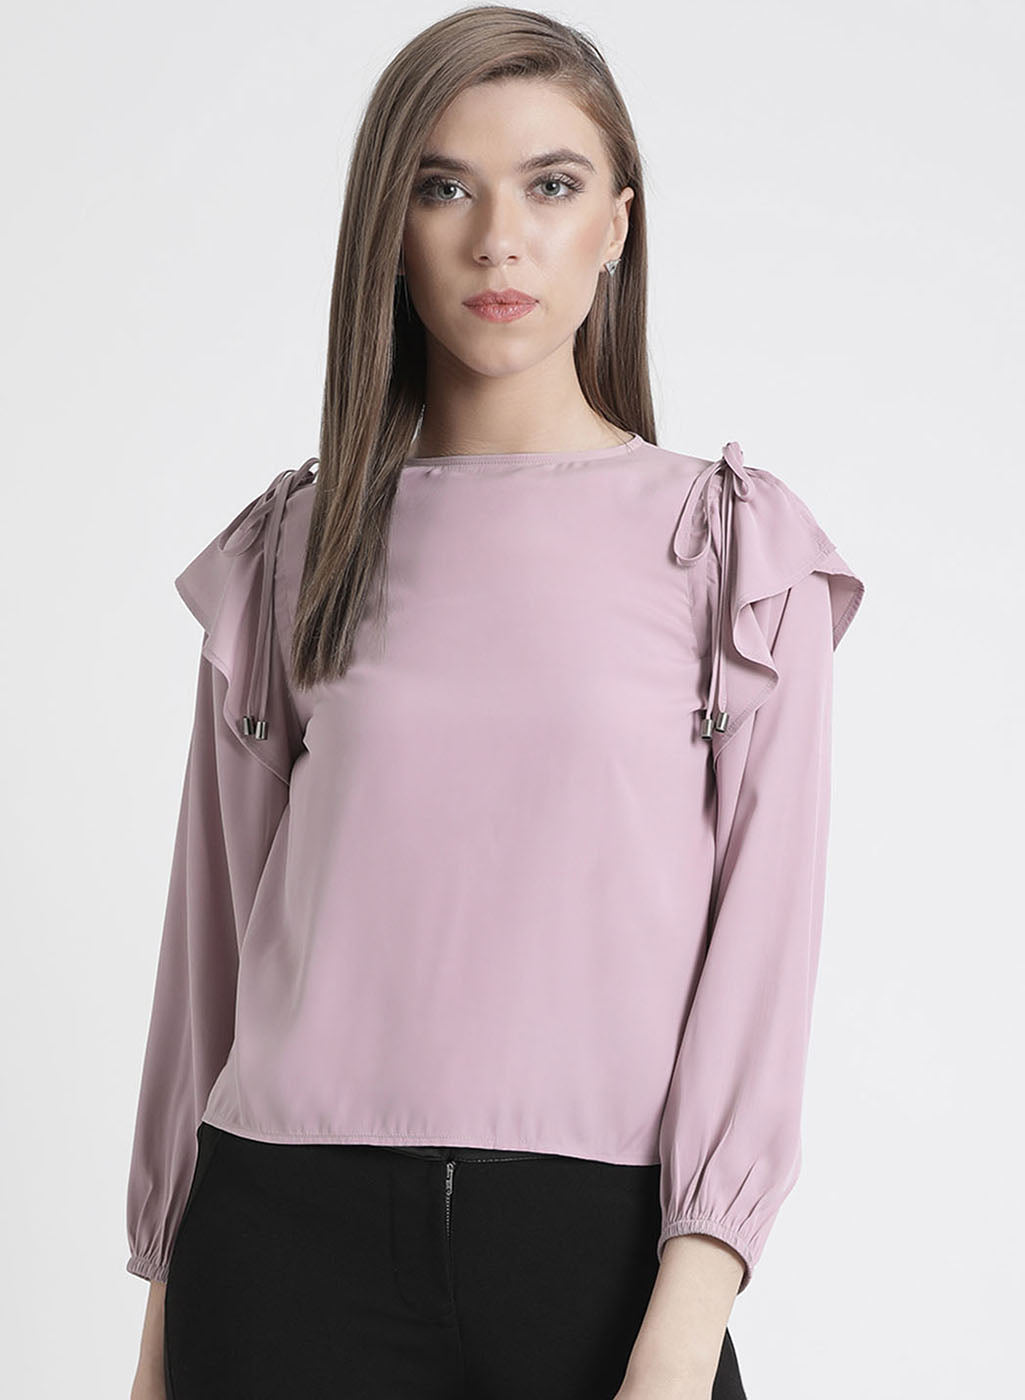 Full Sleeves Top With Tie Up Detailing At Shoulder